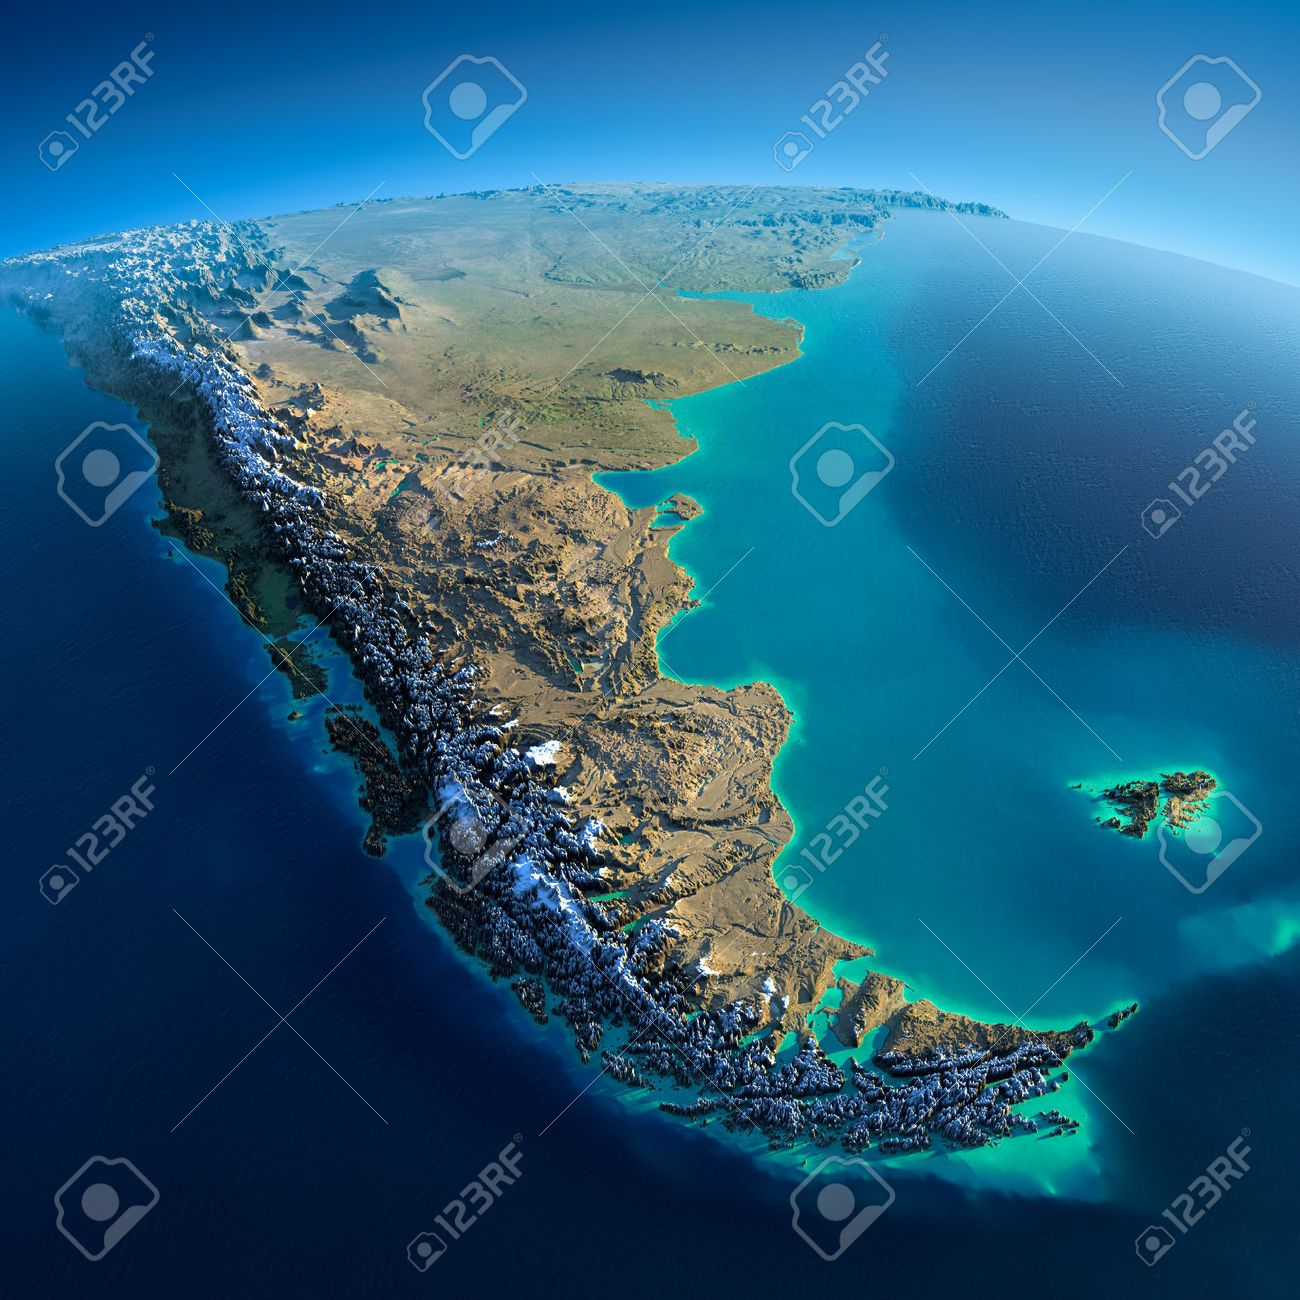 Highly detailed planet Earth in the morning Exaggerated precise relief lit morning sun Detailed Earth South America Tierra del Fuego - 26511015